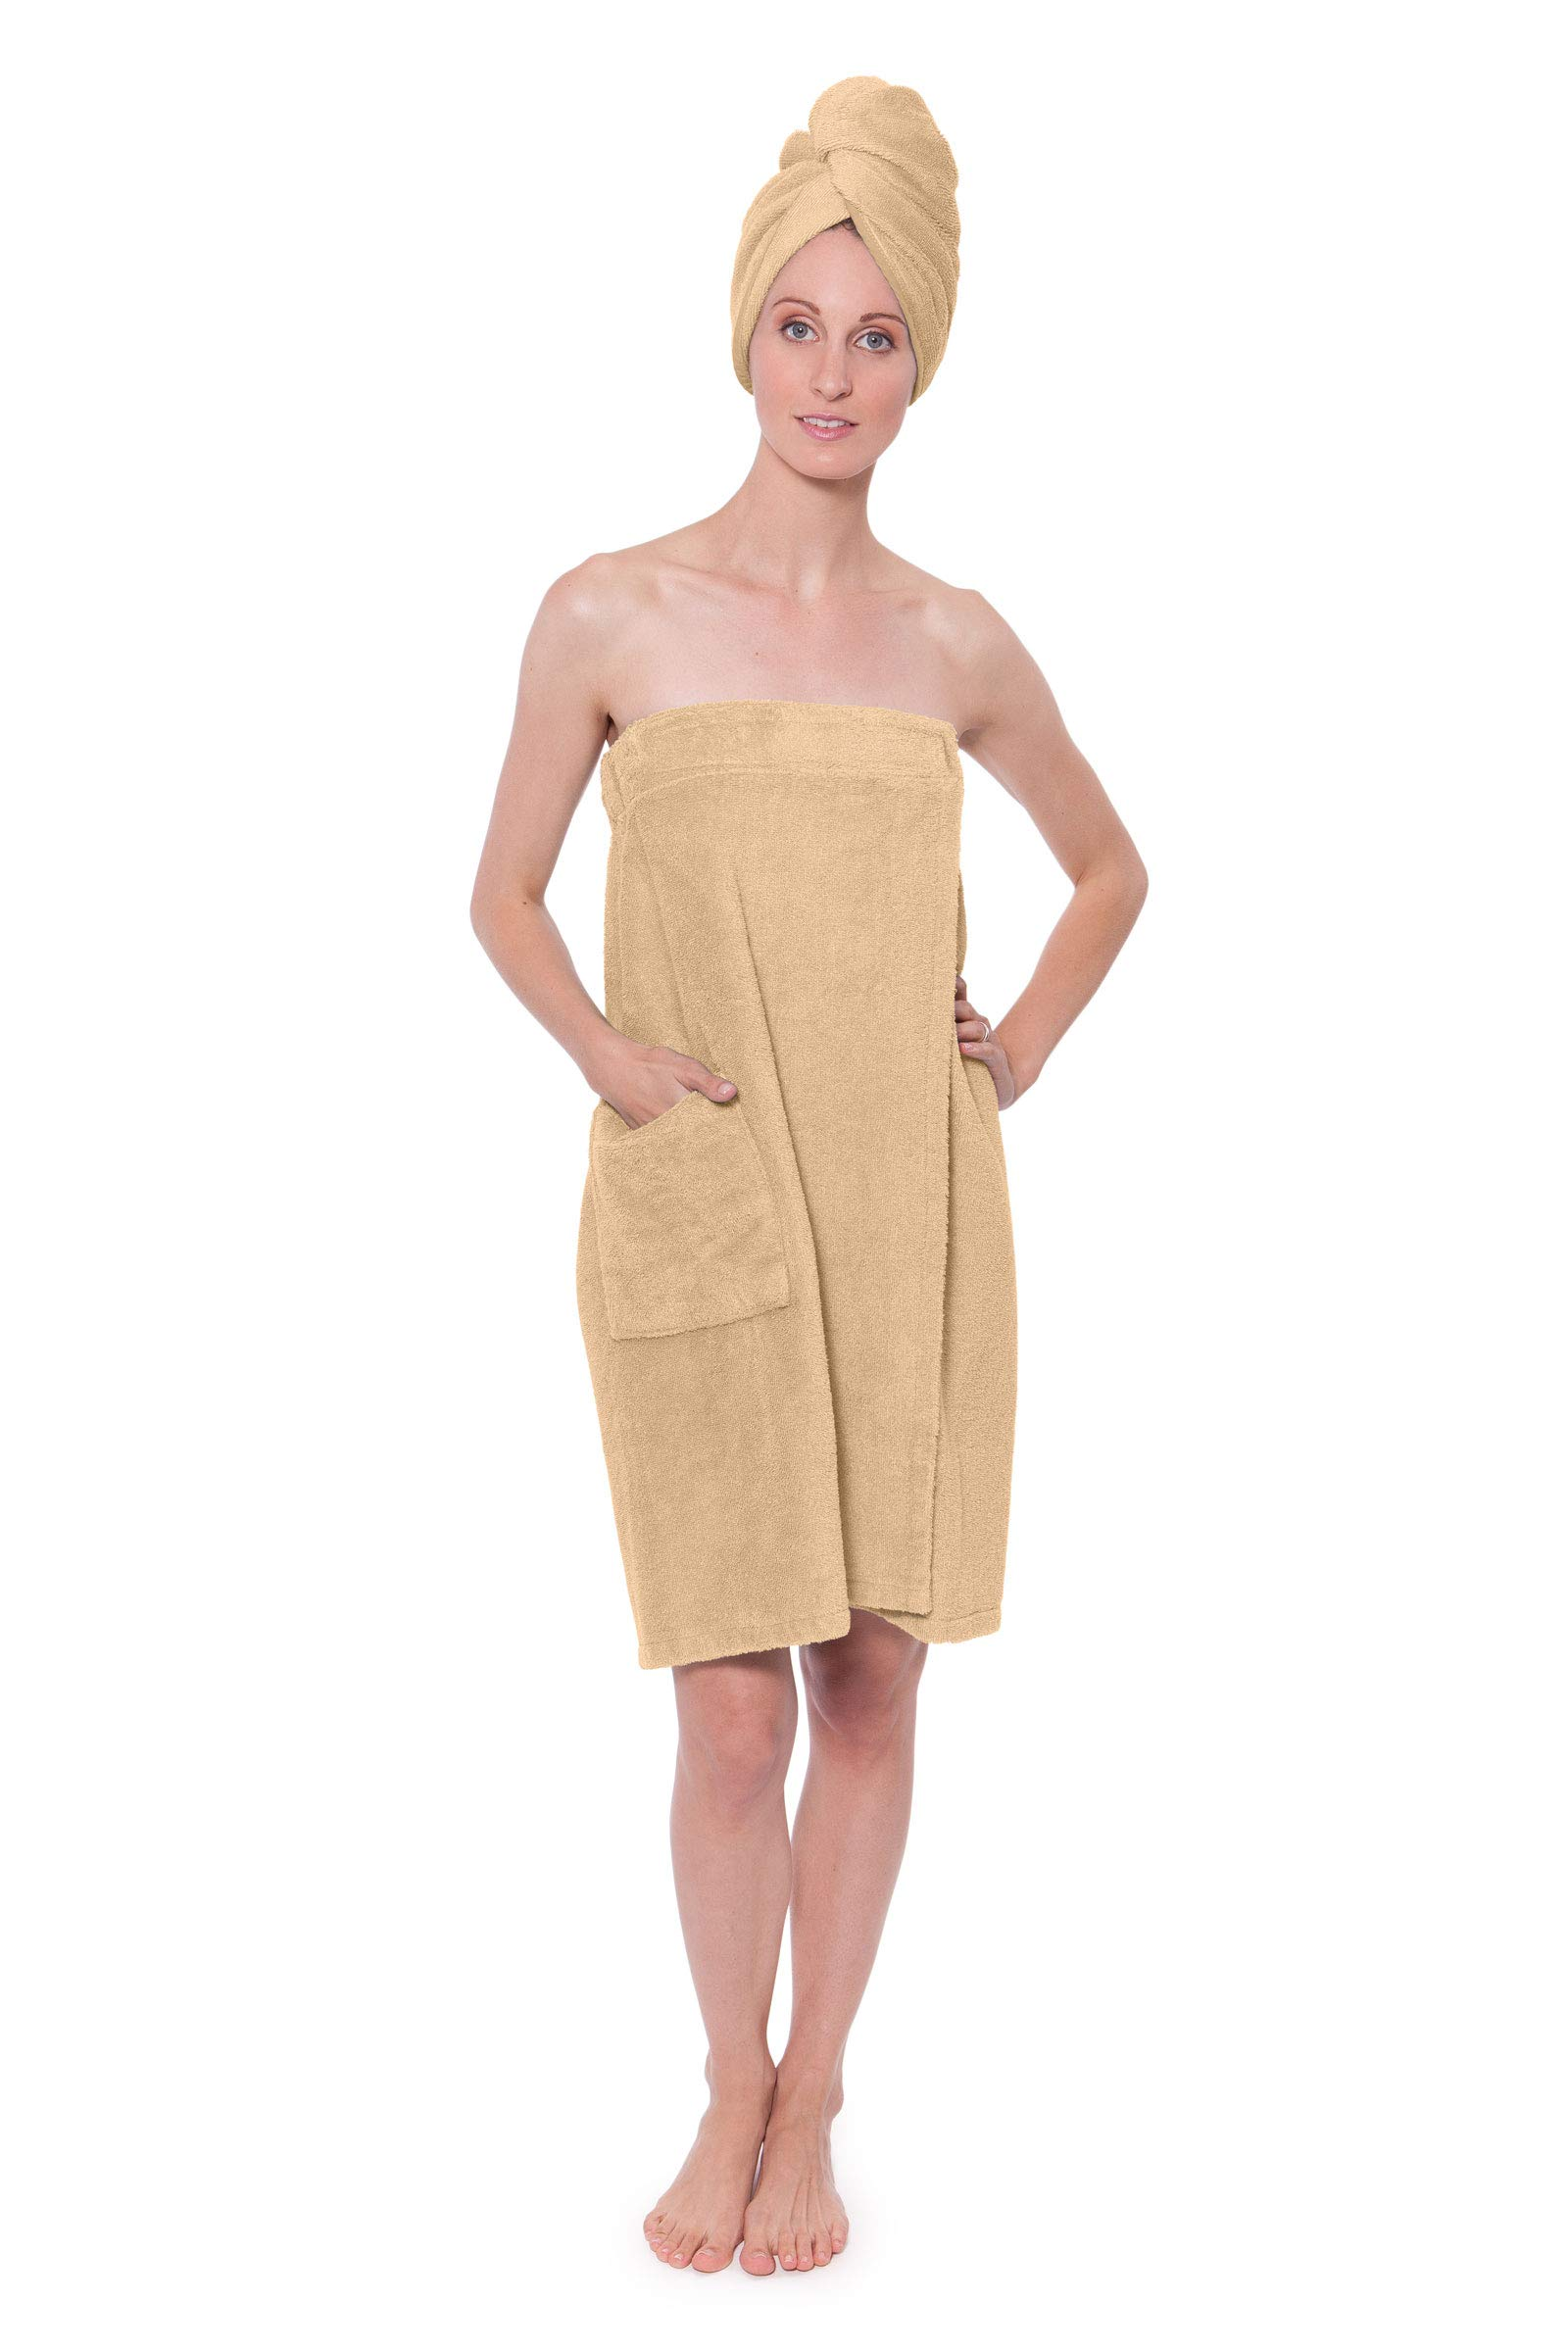 Women's Towel Wrap - Bamboo Viscose Spa Wrap Set by Texere (The Waterfall, Almond Buff, 2X/3X) Comfortable Birthday Holiday Presents for Women WB0103-ABF-2X3X